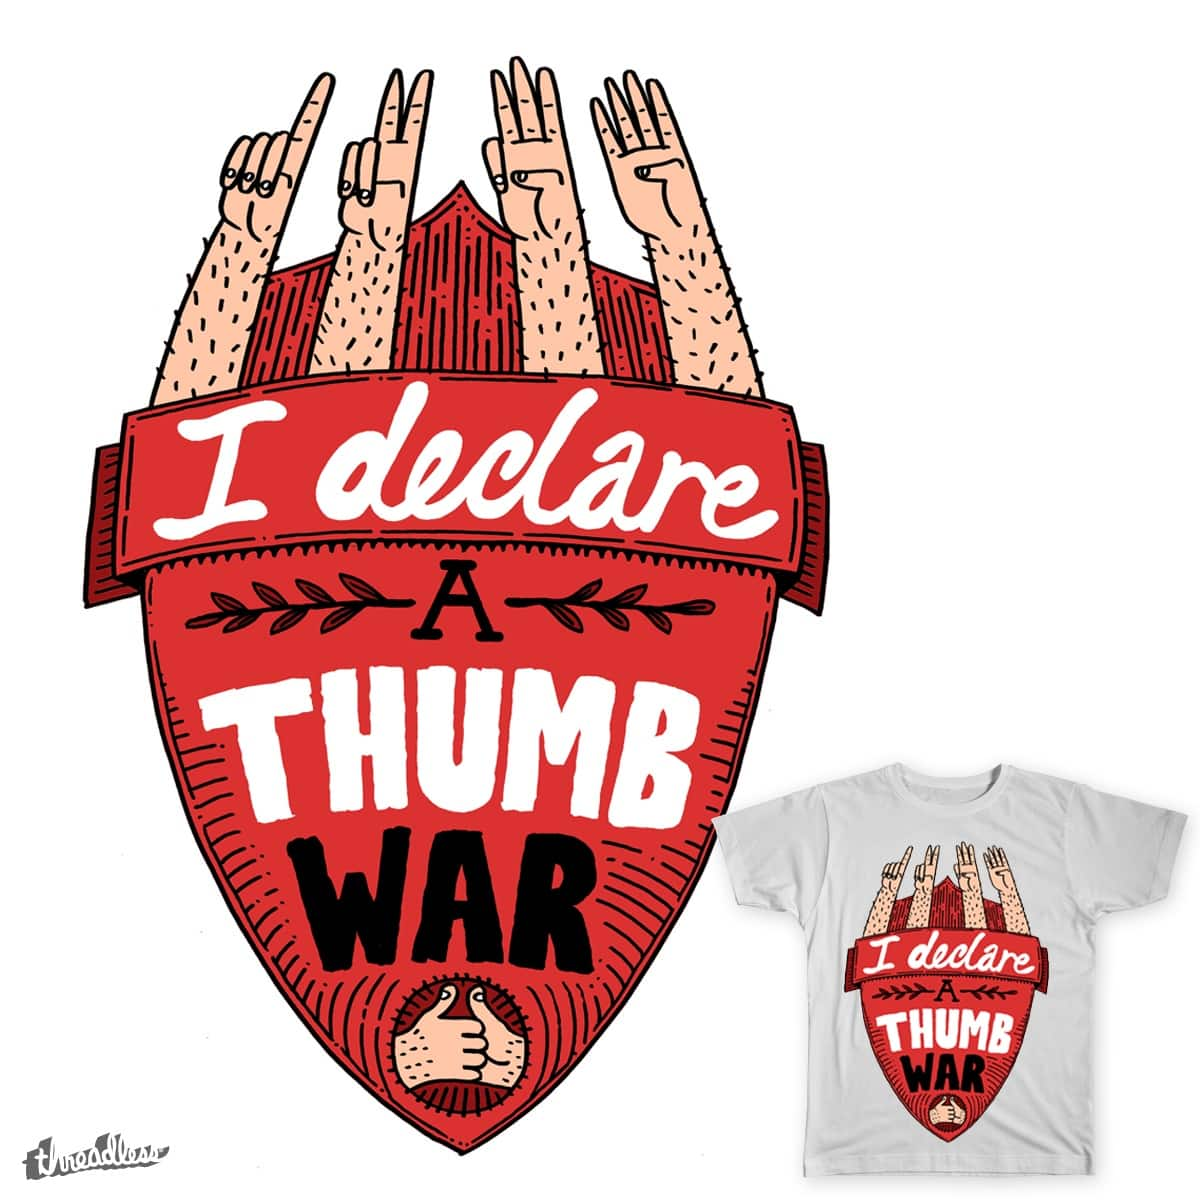 1,2,3,4 I declare a thumb war by mrwoodywoods on Threadless